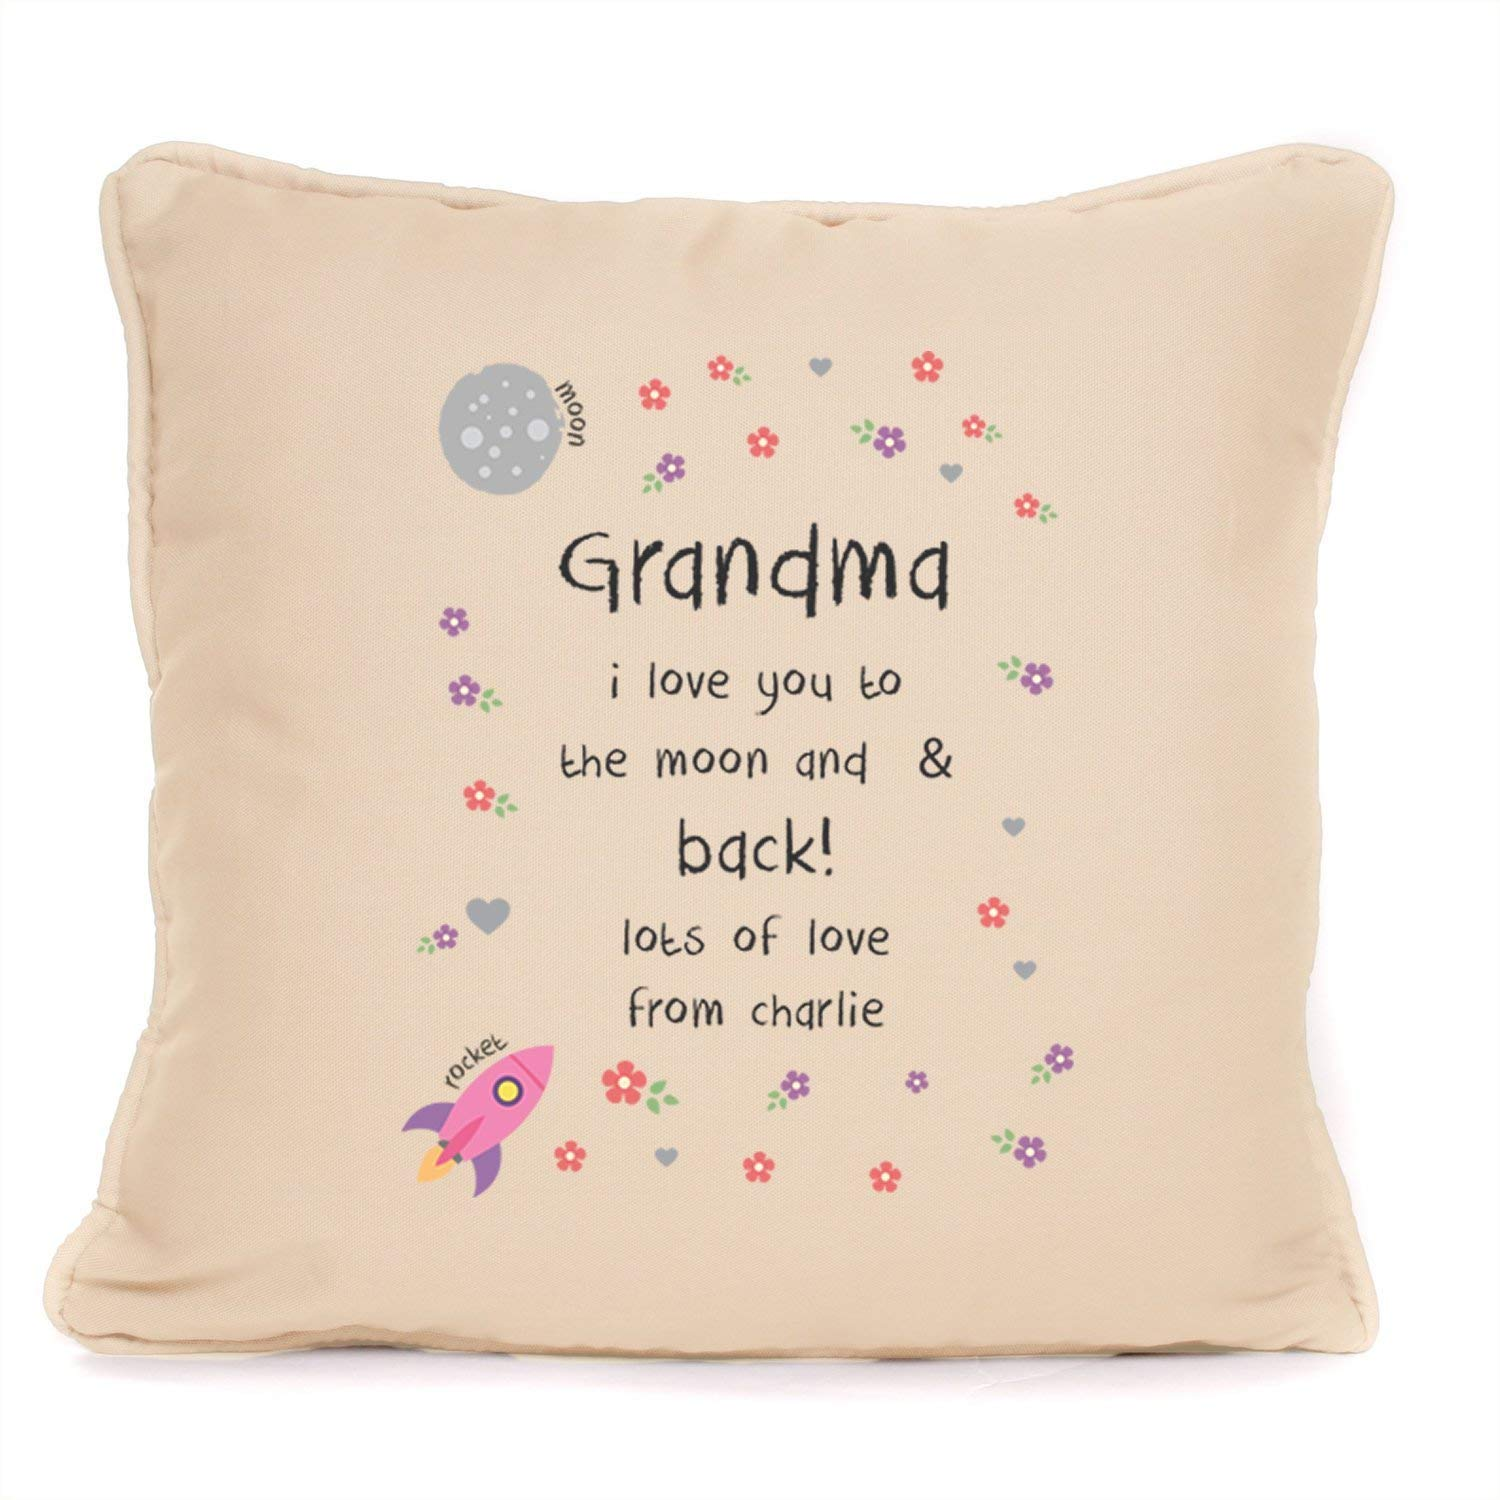 FAMILY CHILDREN QUOTE LOVE PERSONALISED CUSTOM PILLOW CUSHION PRESENT GIFT